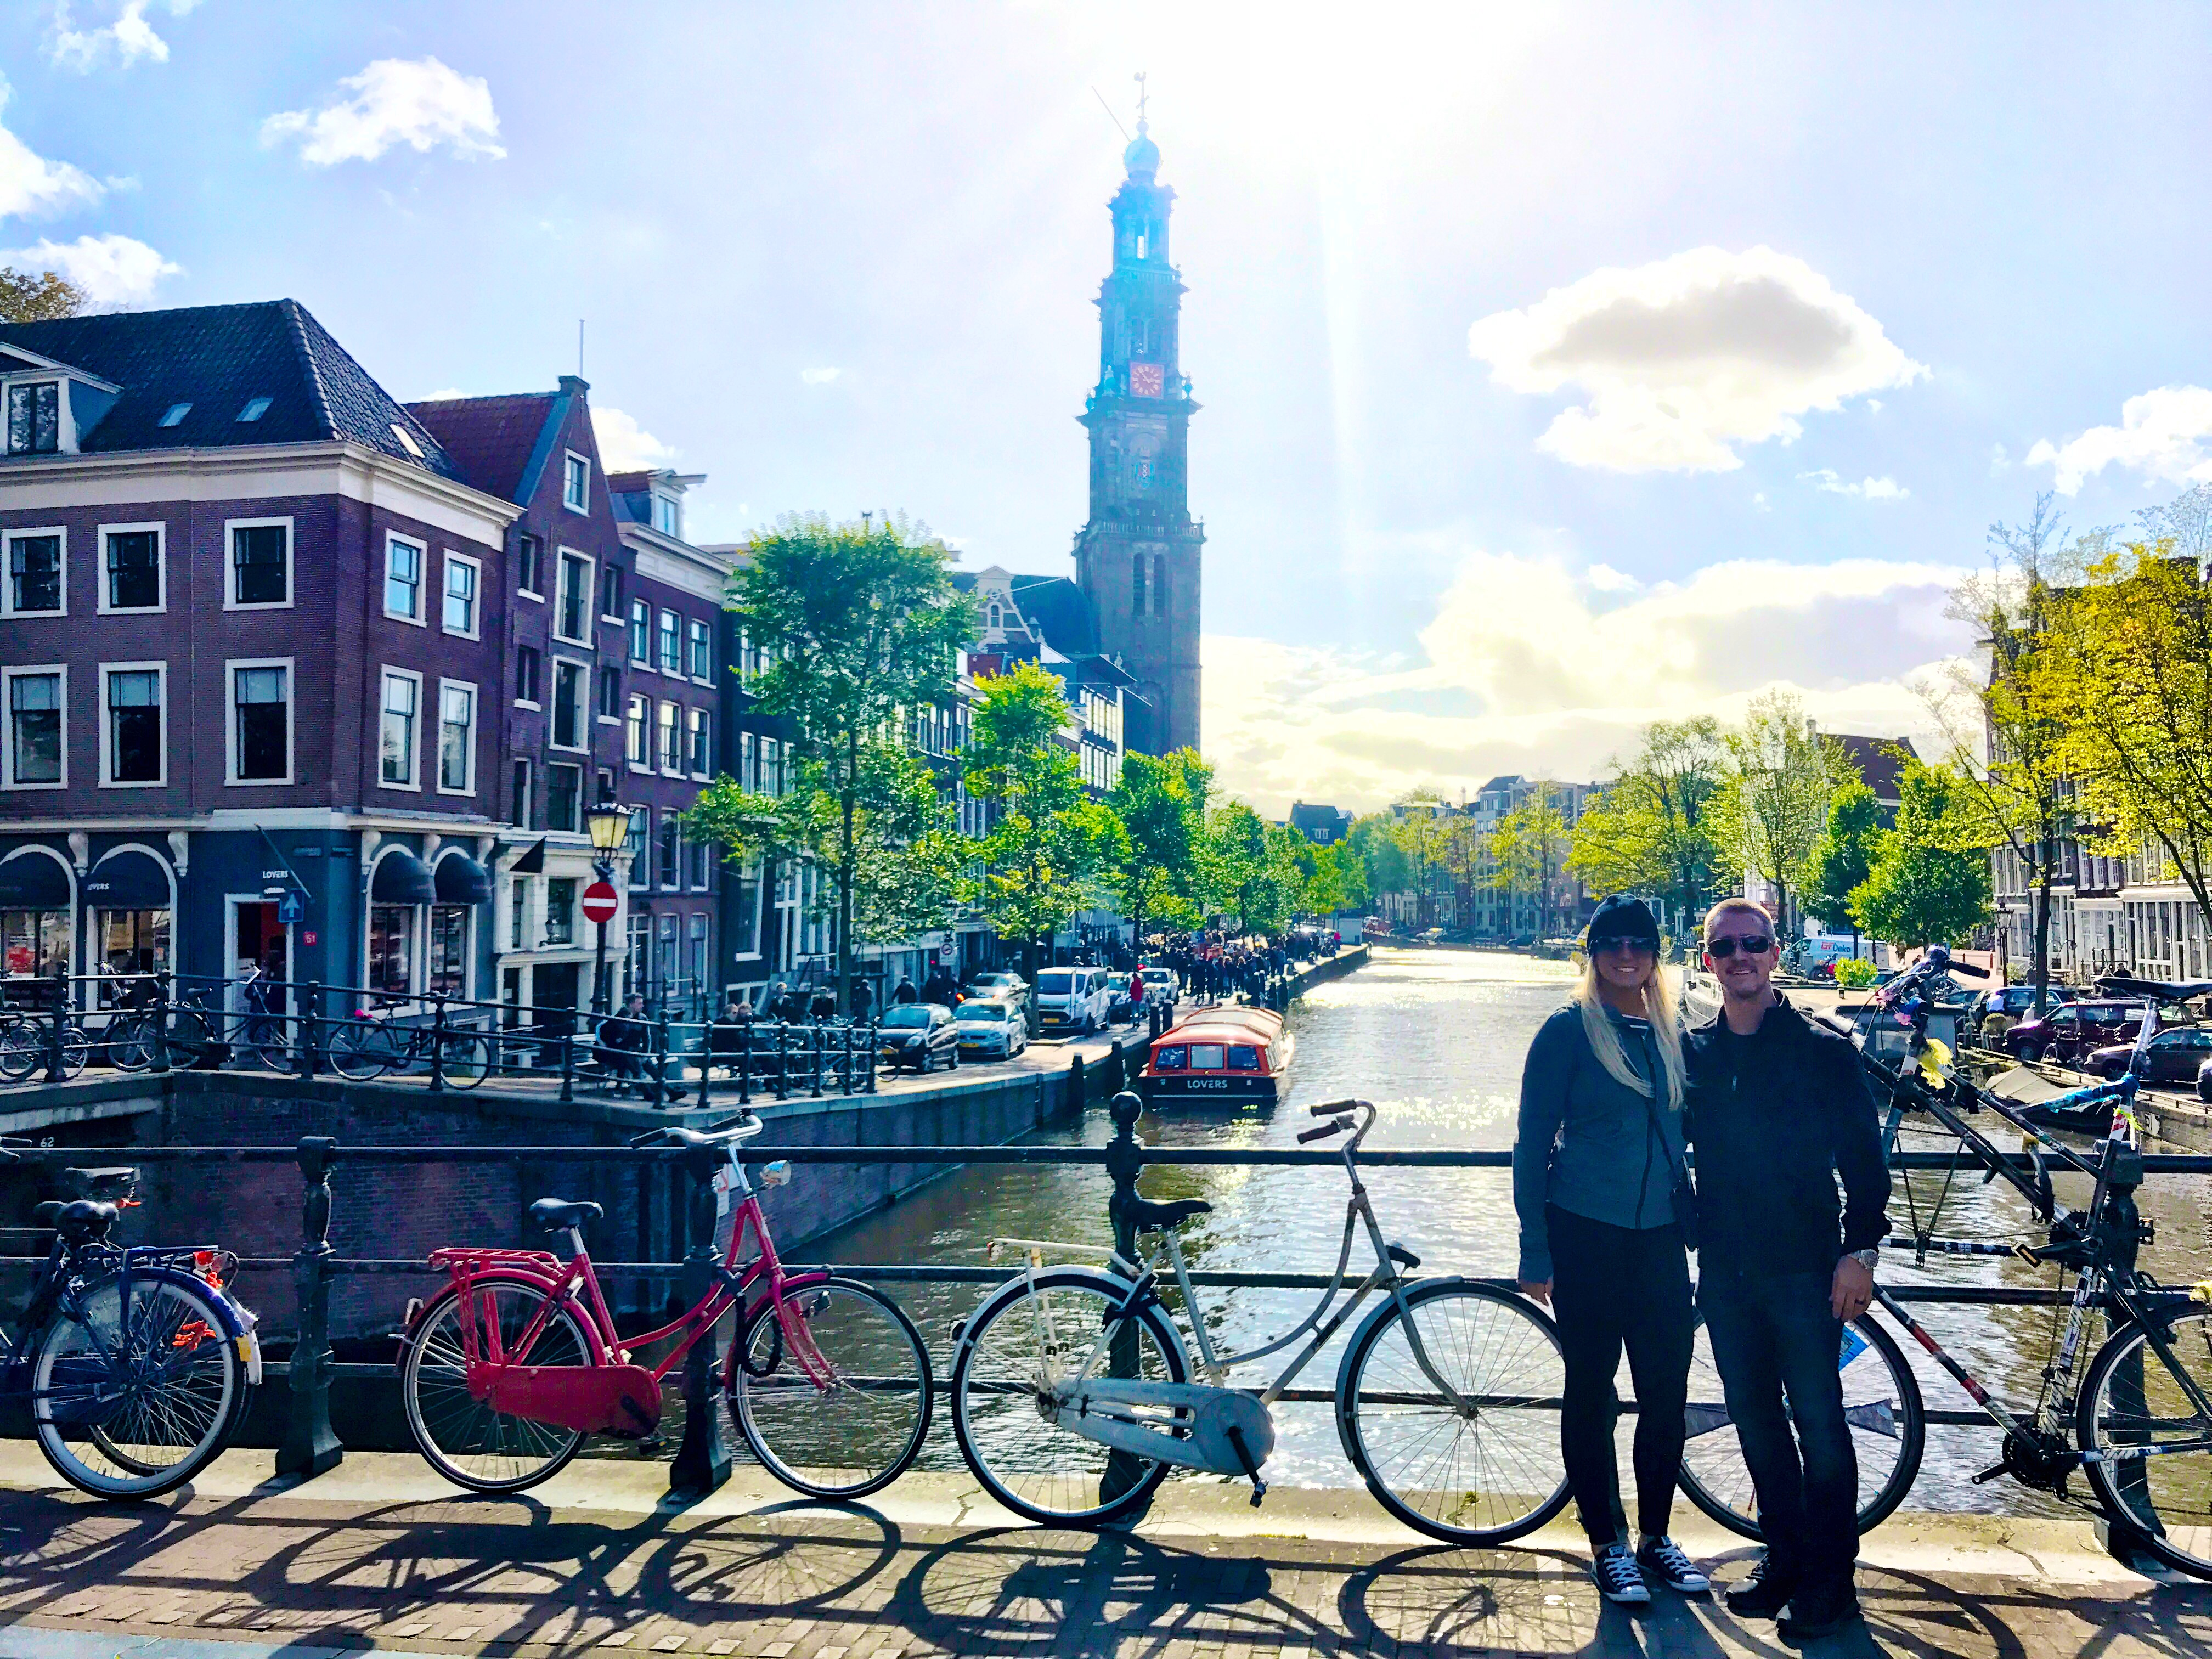 Narrow canals and trendy streets lined with Dutch houses, cool pubs and delicious restaurants make Jordaan the most gorgeous and most popular districts in Amsterdam, Netherlands.